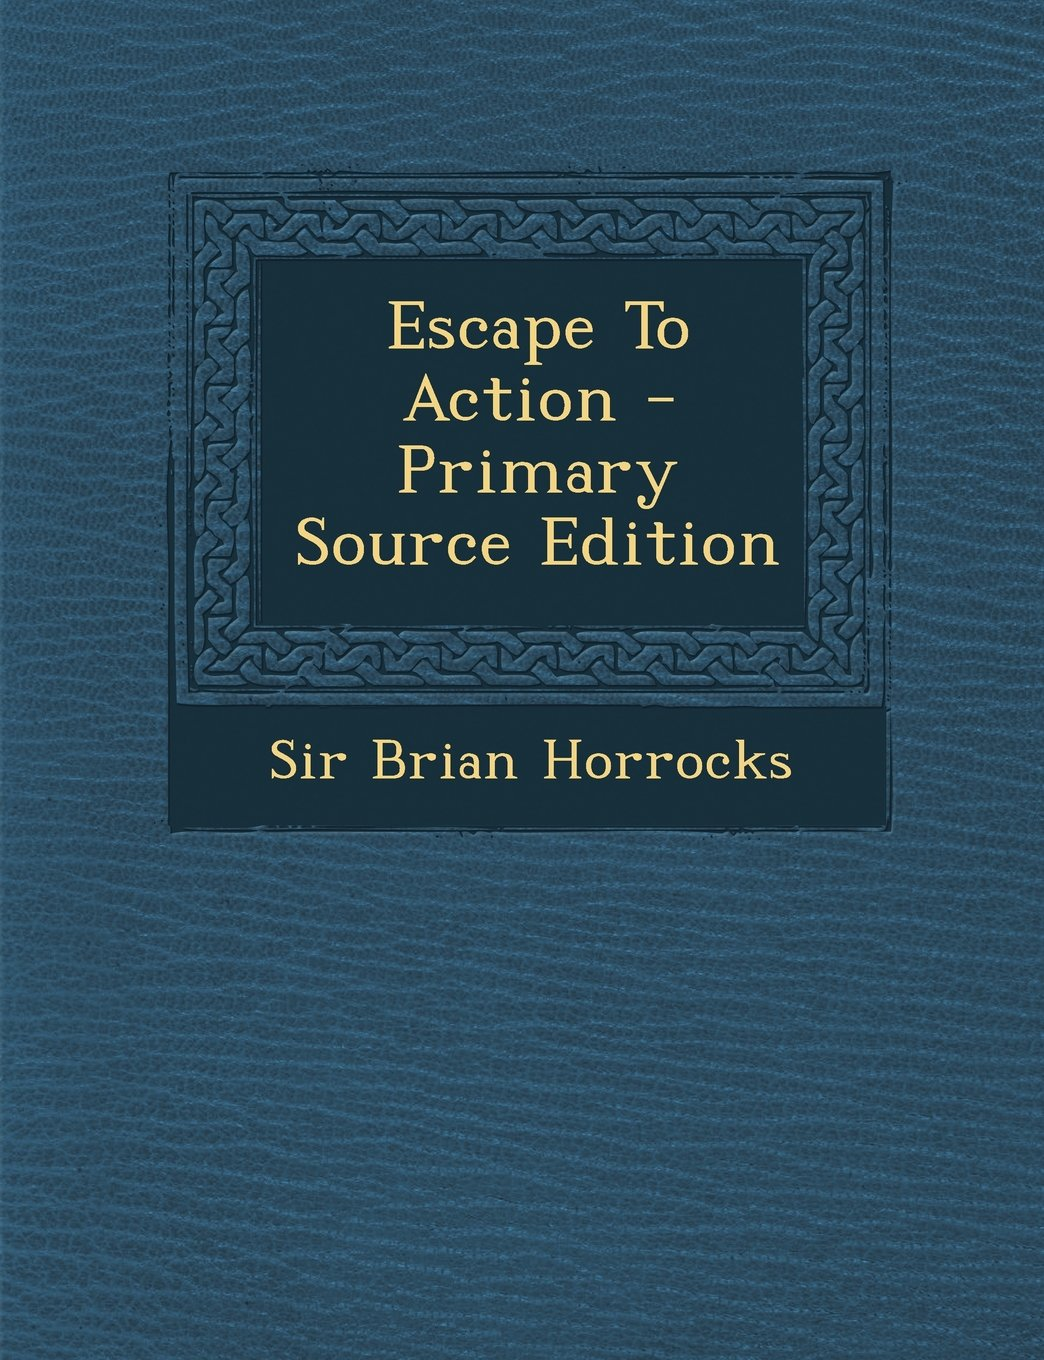 Read Online Escape To Action - Primary Source Edition ebook